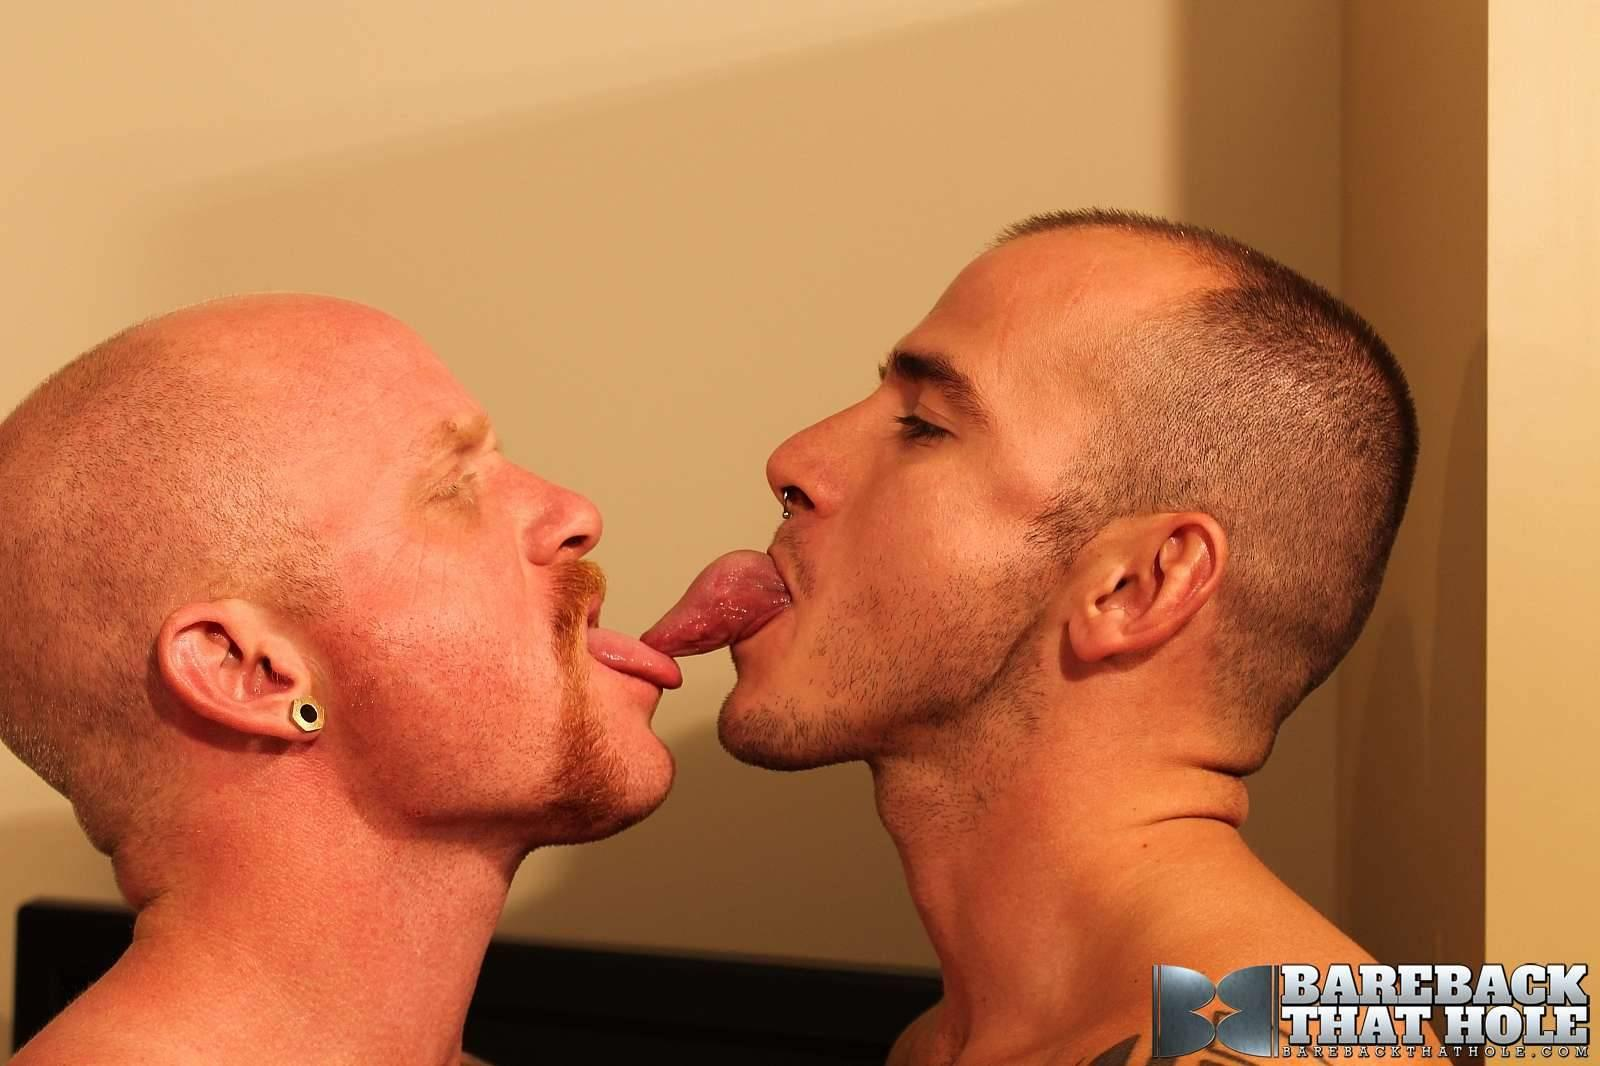 Bareback-That-Hole-Cam-Christou-and-Brock-Rustin-Redhead-Ginger-Gets-Barebacked-By-A-Big-Cock-Amateur-Gay-Porn-23 Redhead Ginger Brock Rustin Taking A Huge Bareback Load